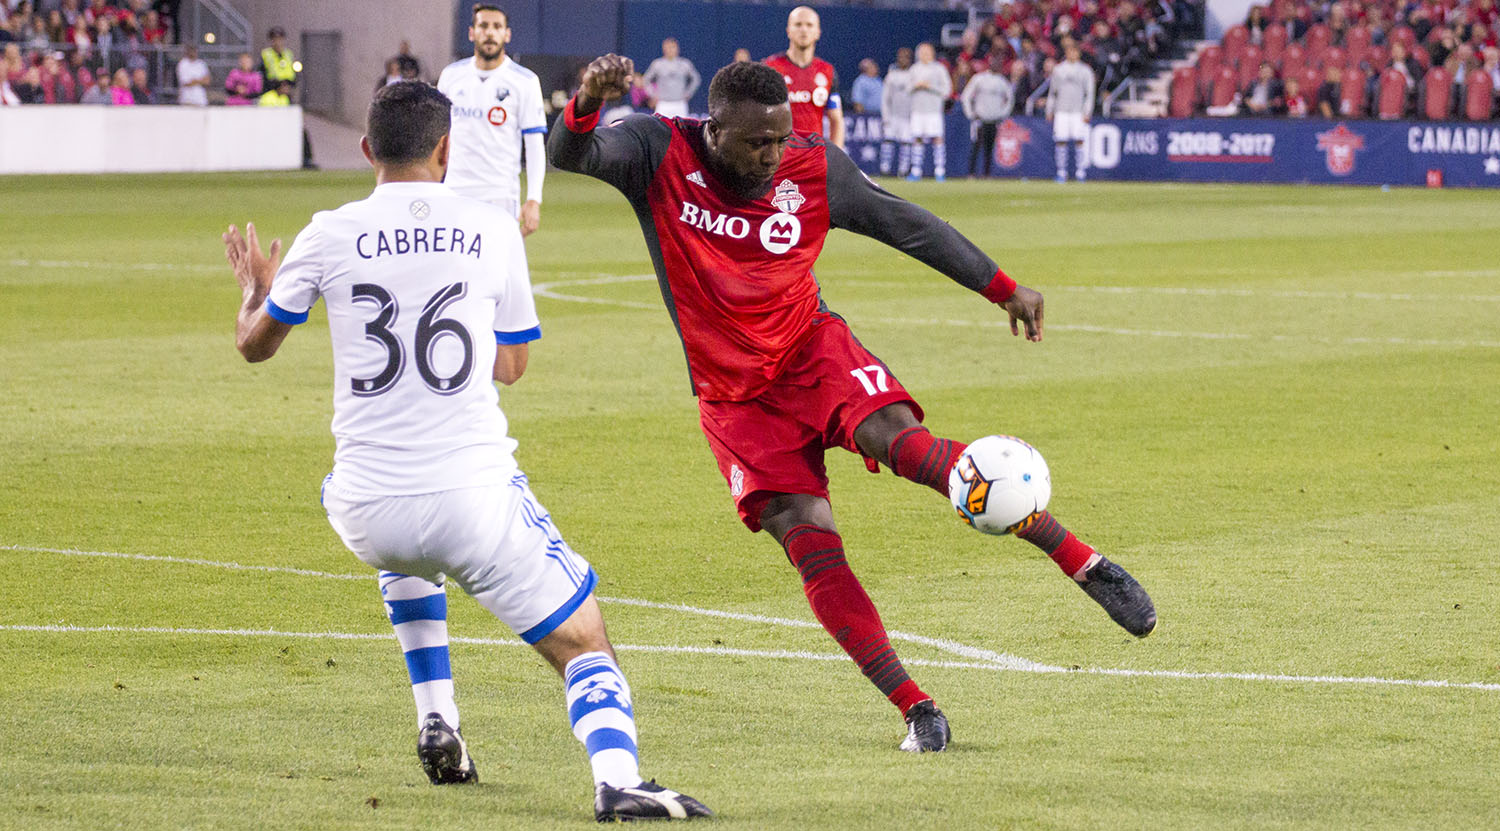 Jozy Altidore tries to take a shot on net against Montreal Impact's Cabrera who would end up blocking the ball from reaching any further.Image by Dennis Marciniak of denMAR Media.